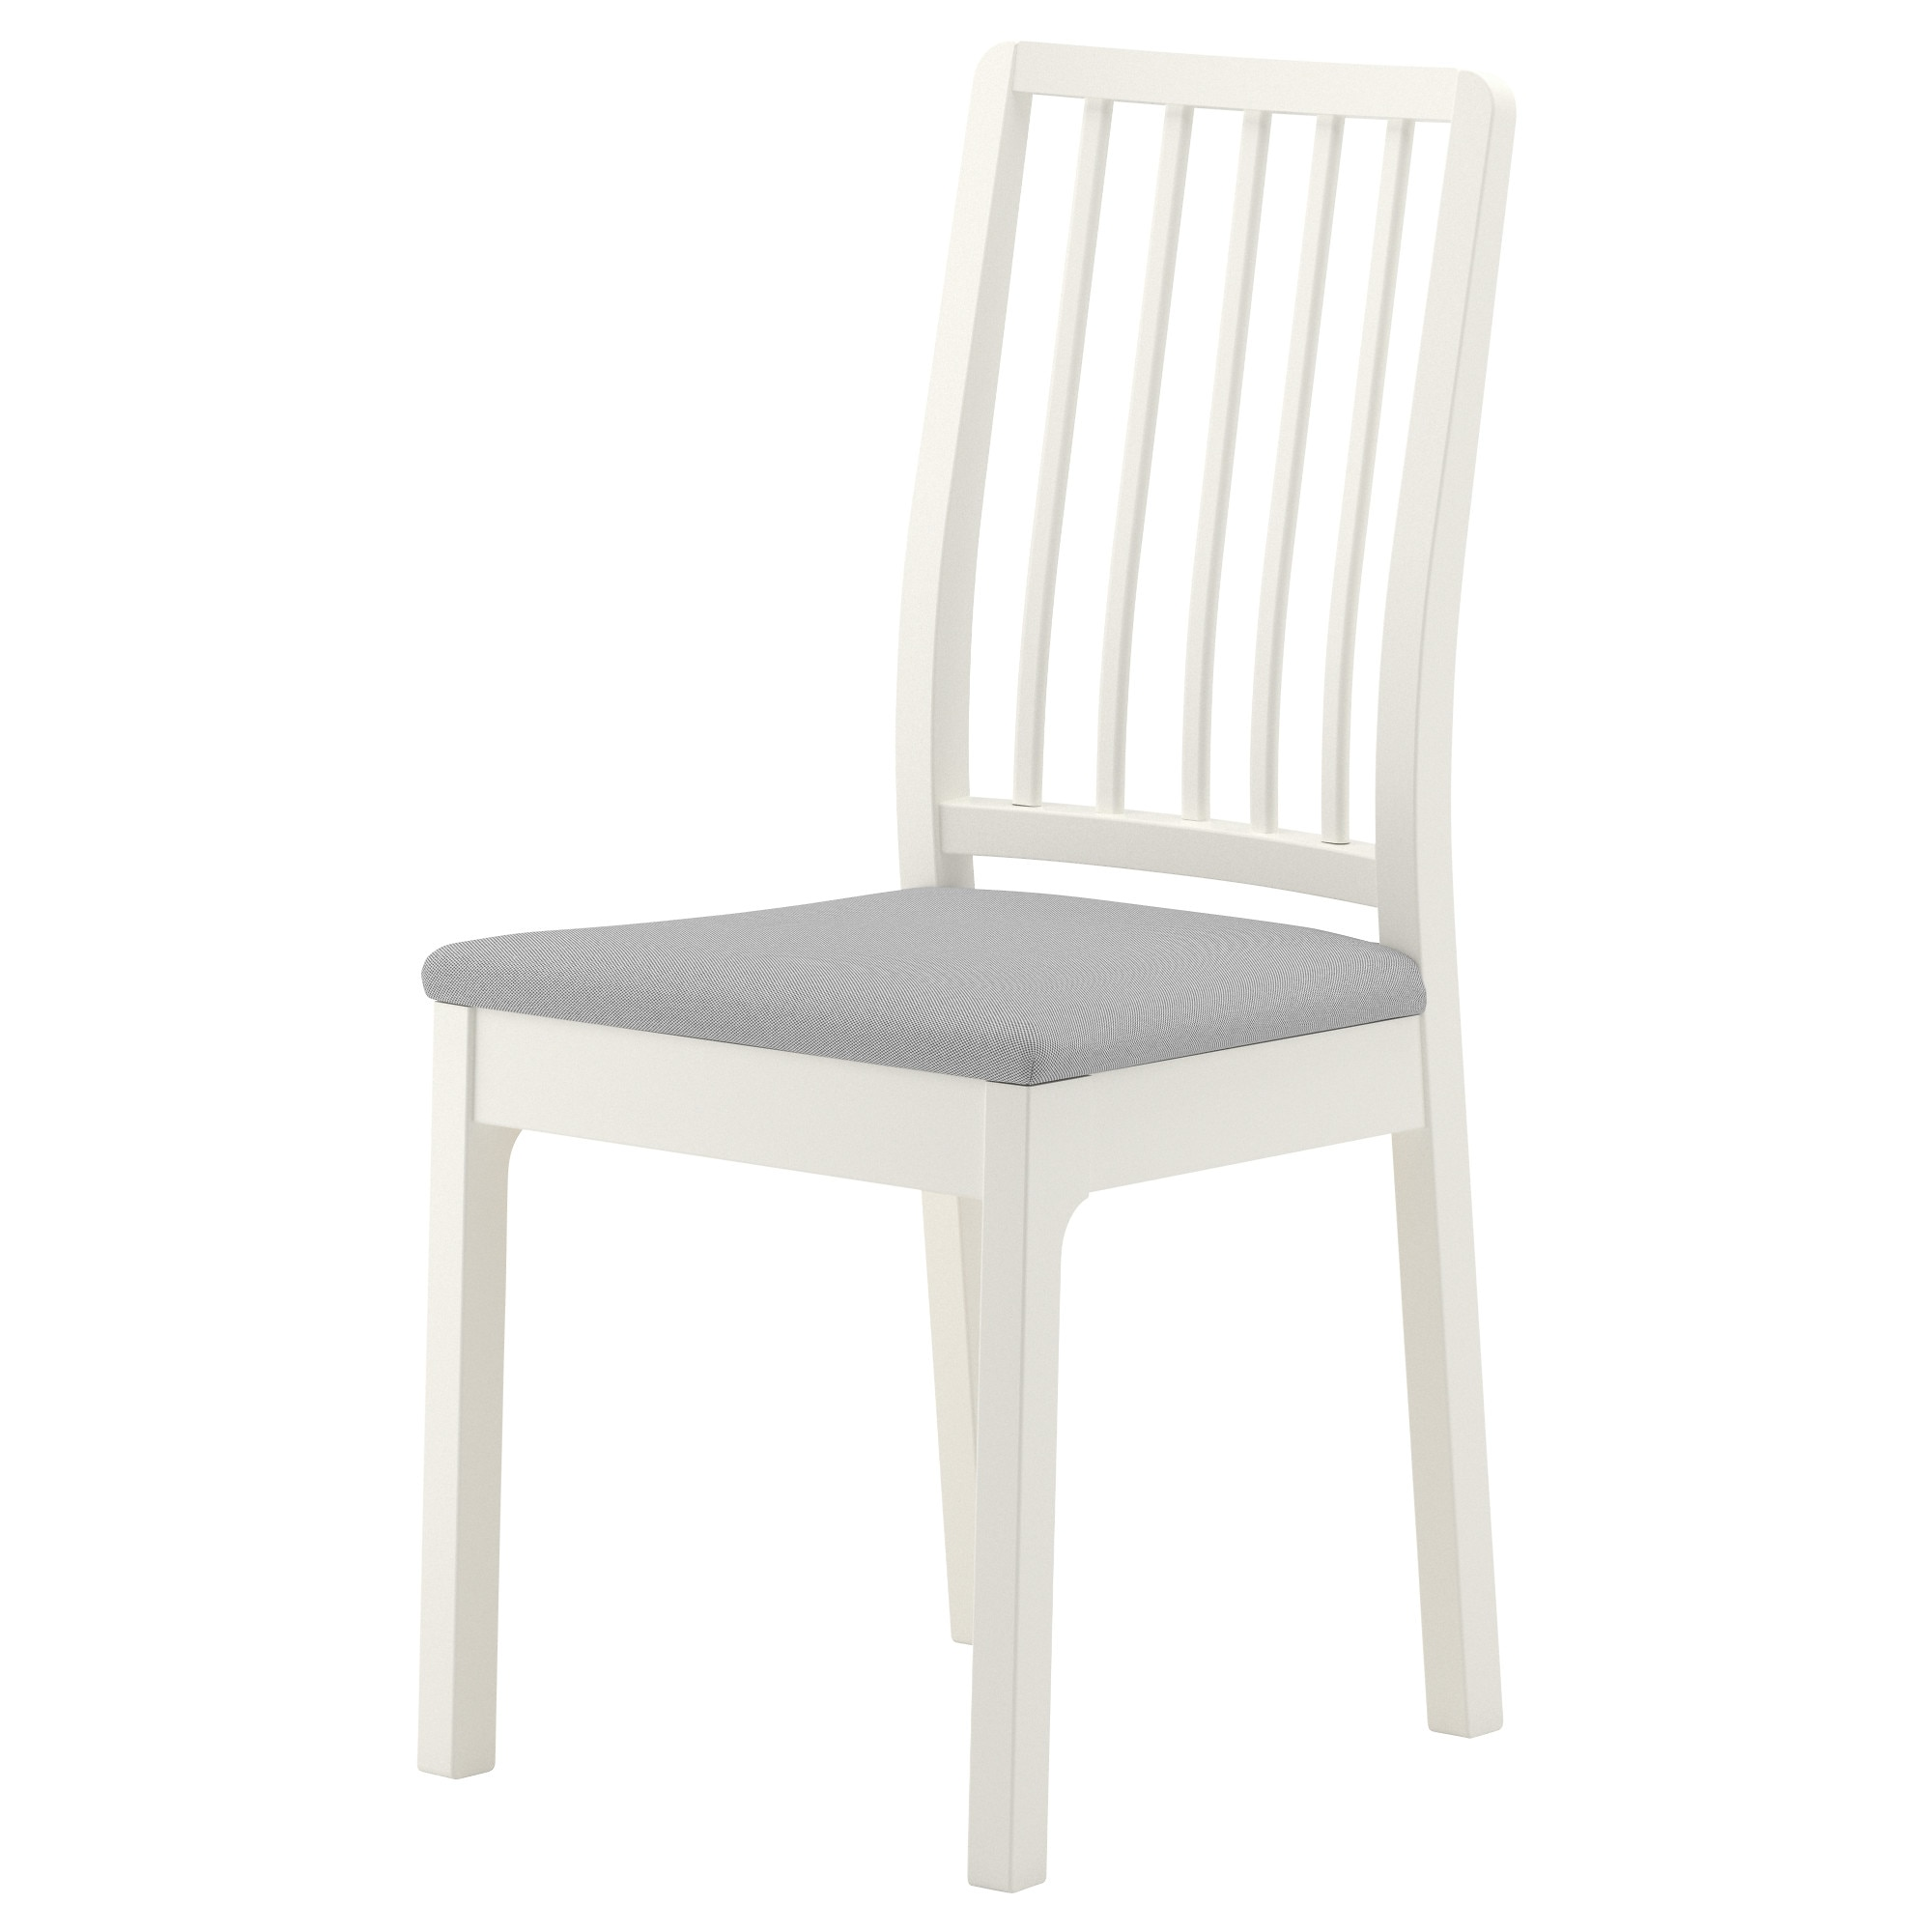 ekedalen chair white orrsta light gray tested for 243 lb width 16